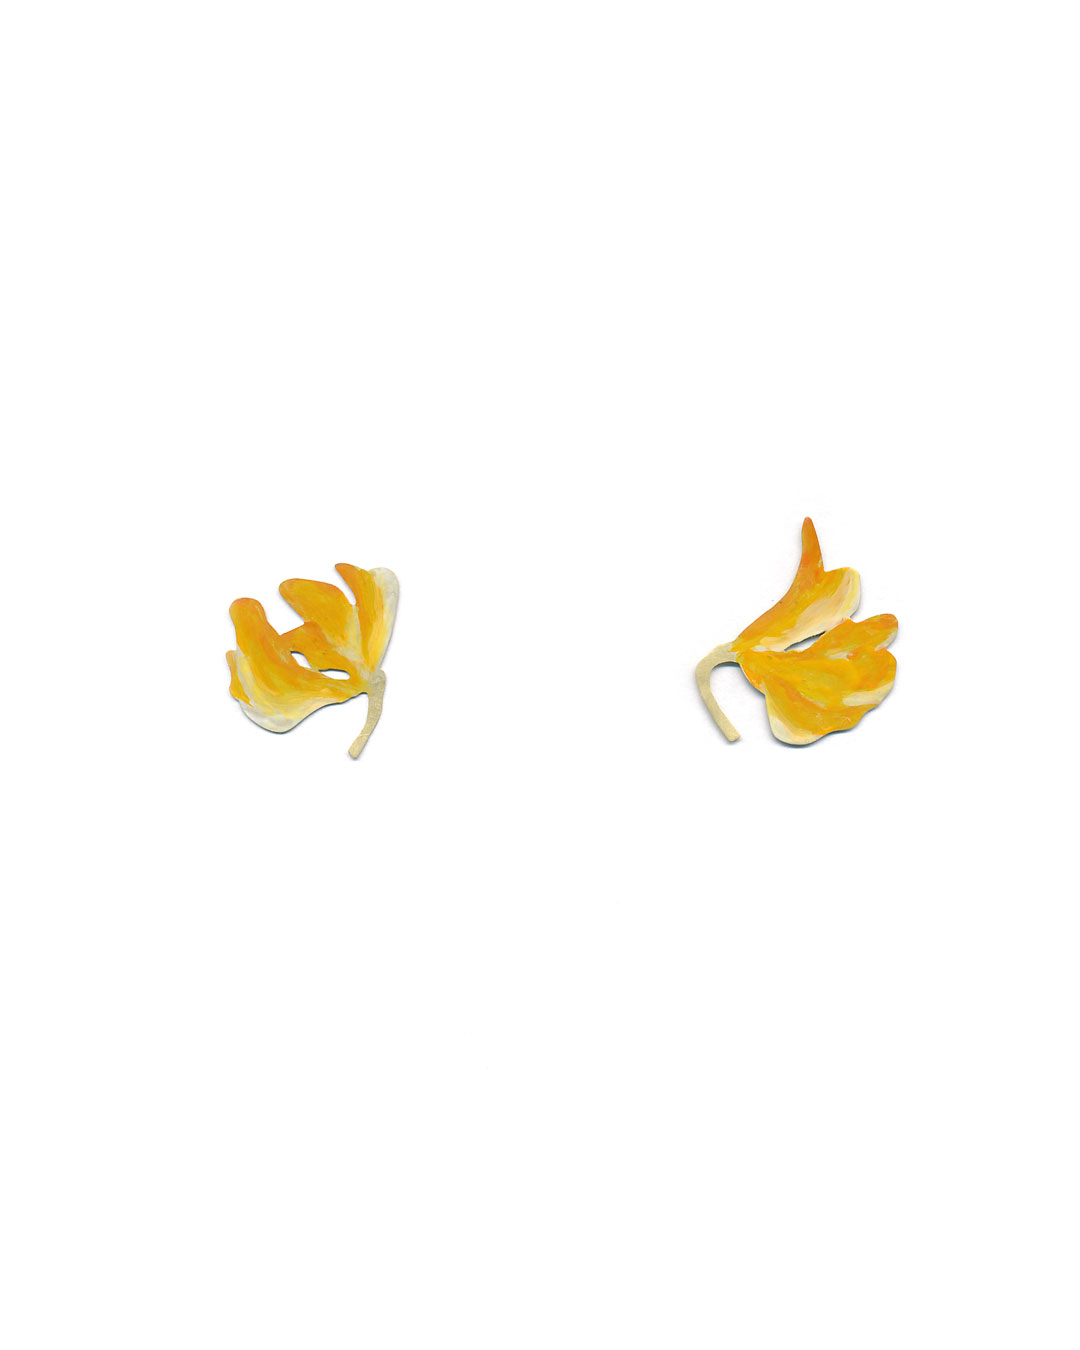 Christopher Thompson Royds, Natura Morta: Meadow Vetch, 2016, stud earrings; 18ct gold, hand-painted, 20 x 21 mm, €750